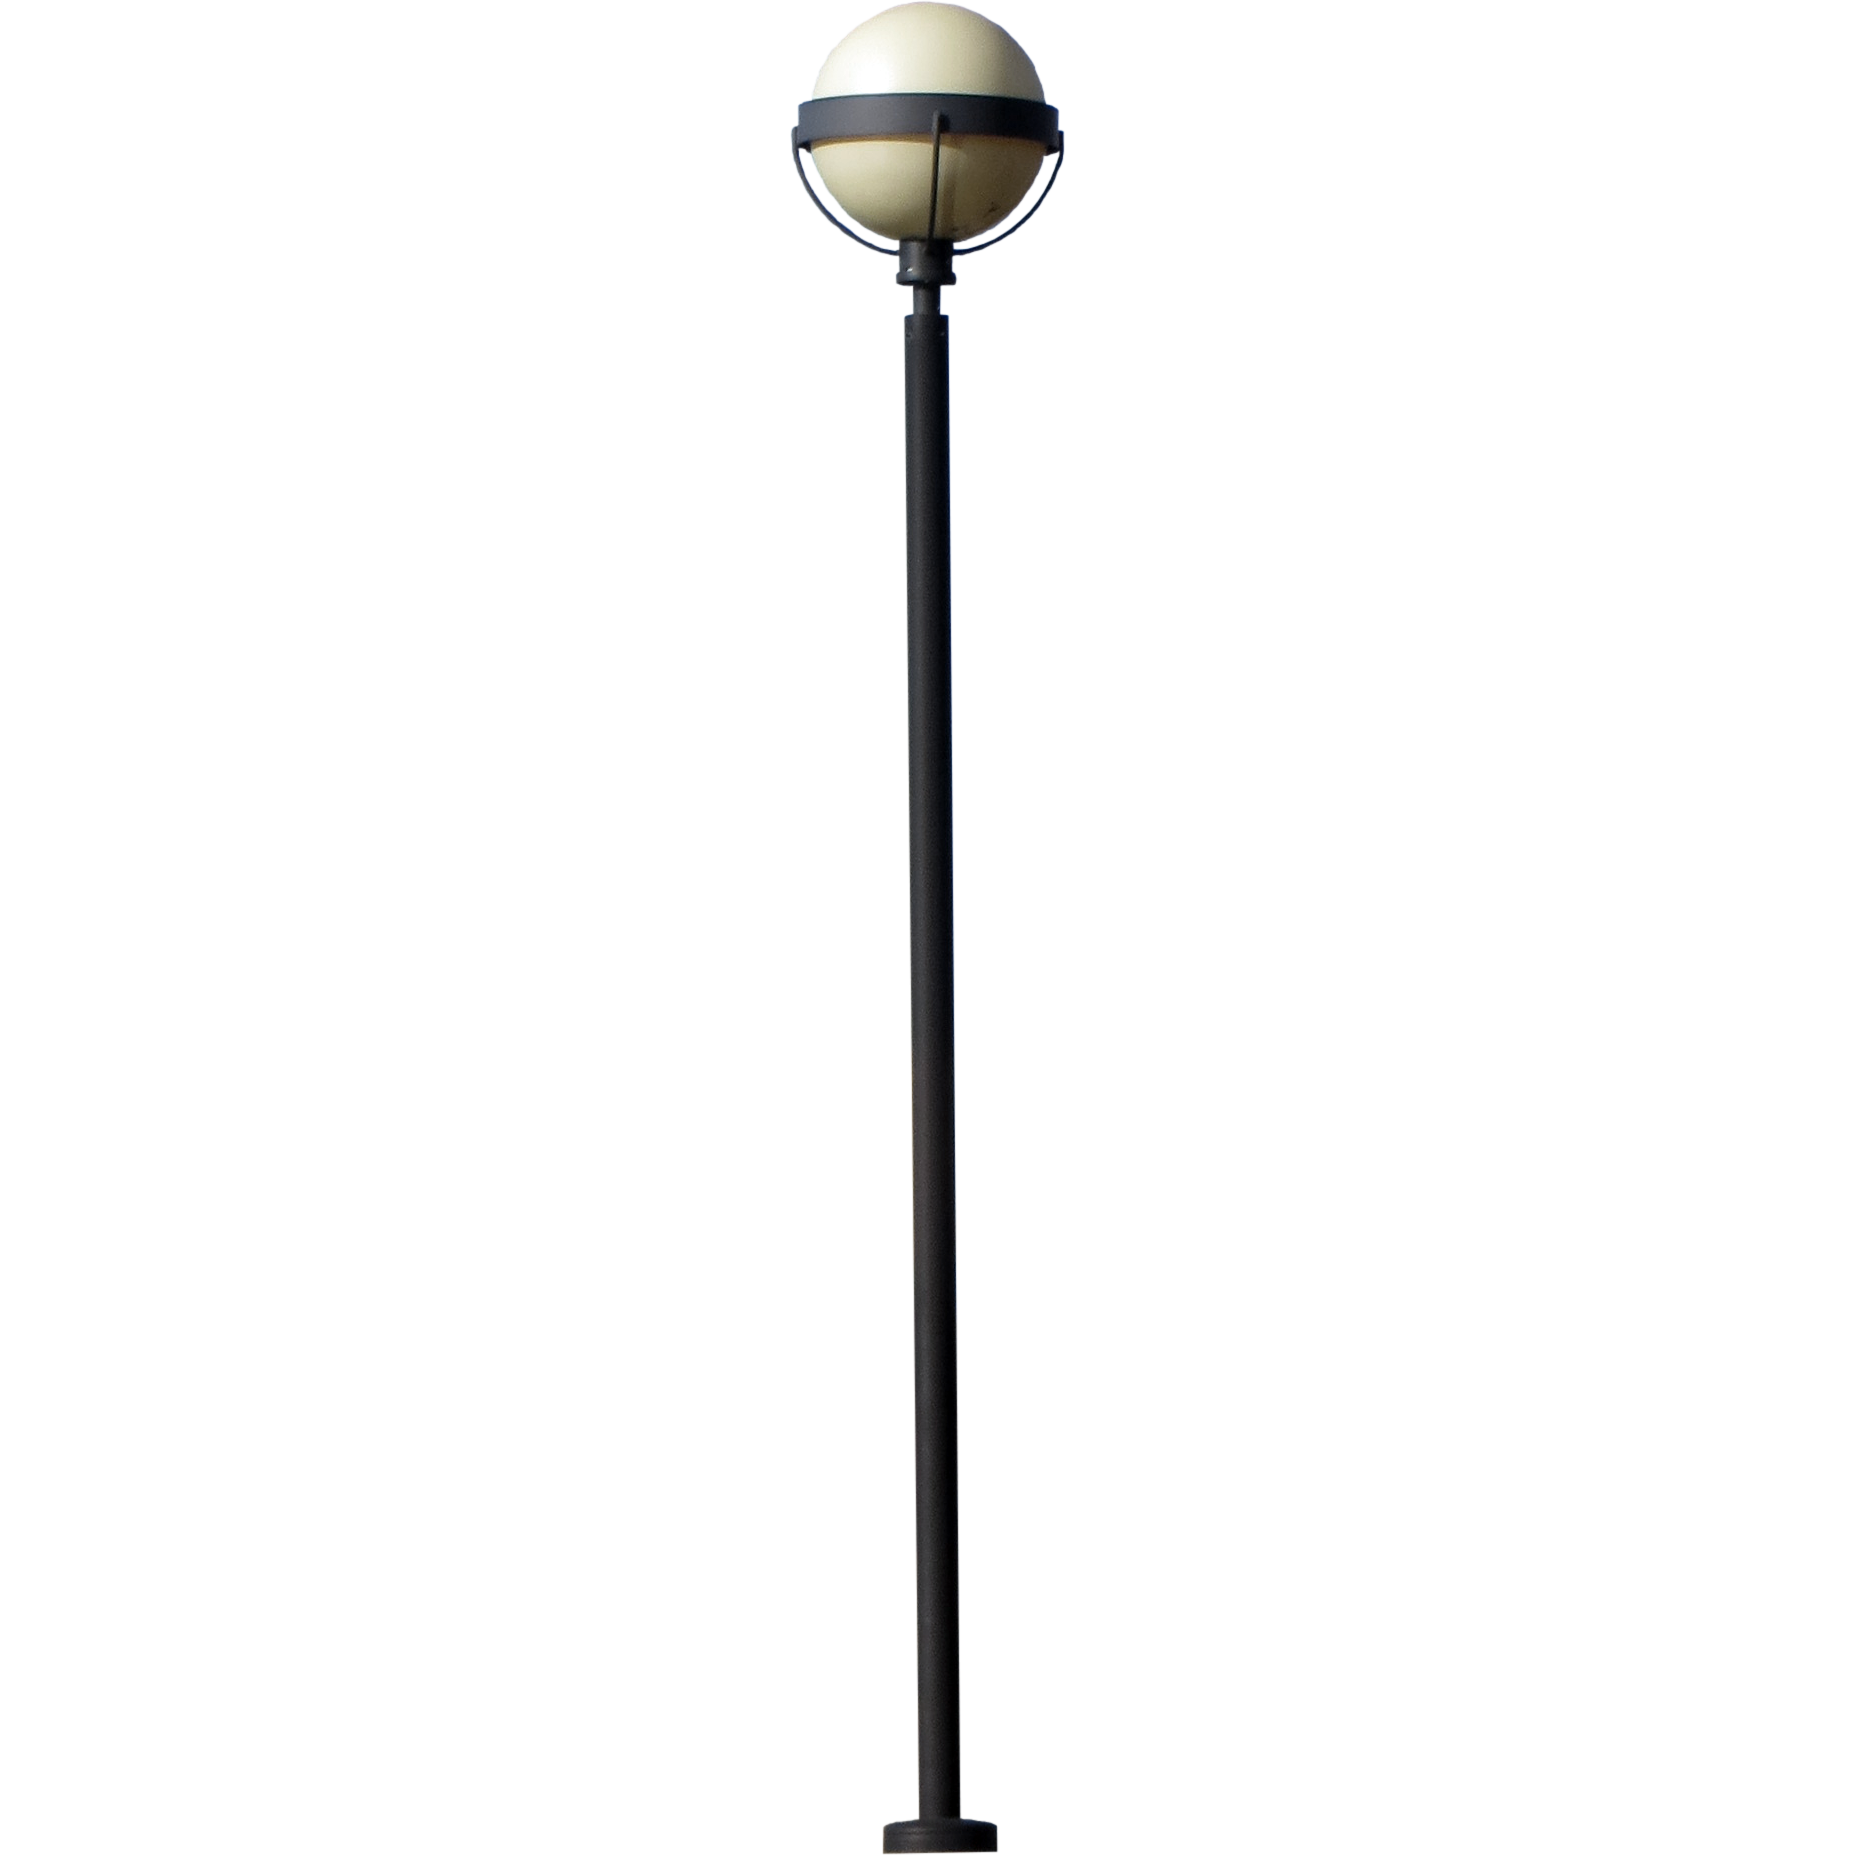 Lamp post silhouette png. Http micogen com uploads